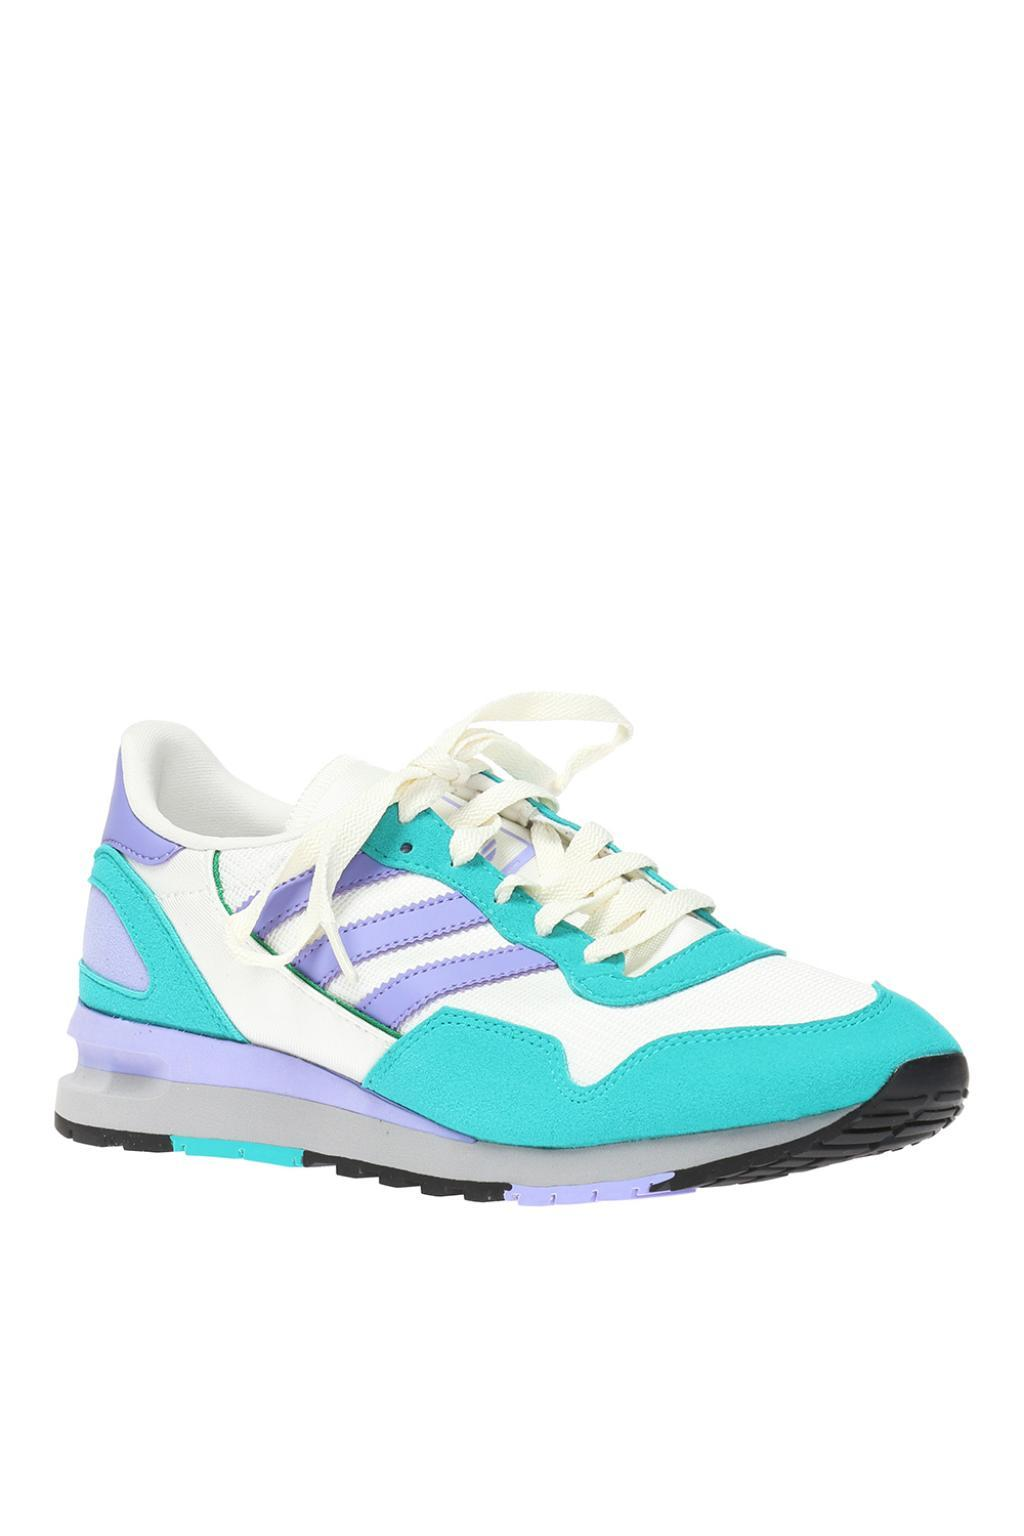 aee9d517aed1 Lyst - adidas Originals Lowertree  Sport Shoes With A Logo in Blue ...